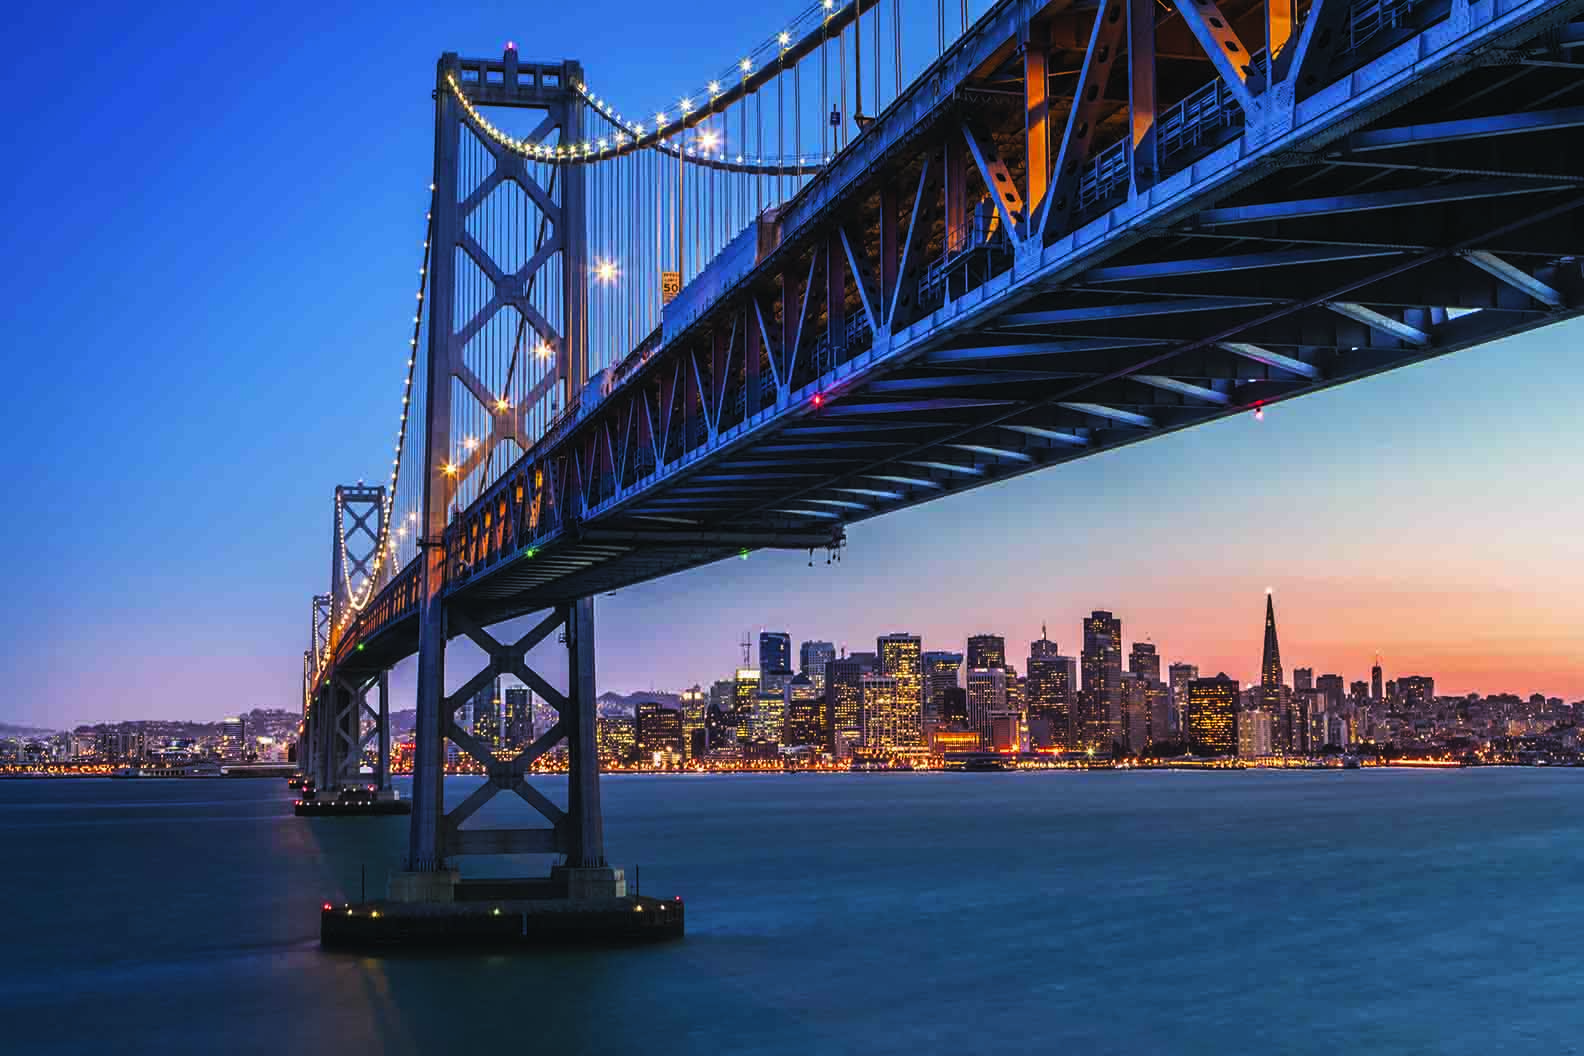 24 HOURS FOR SAN FRANCISCO